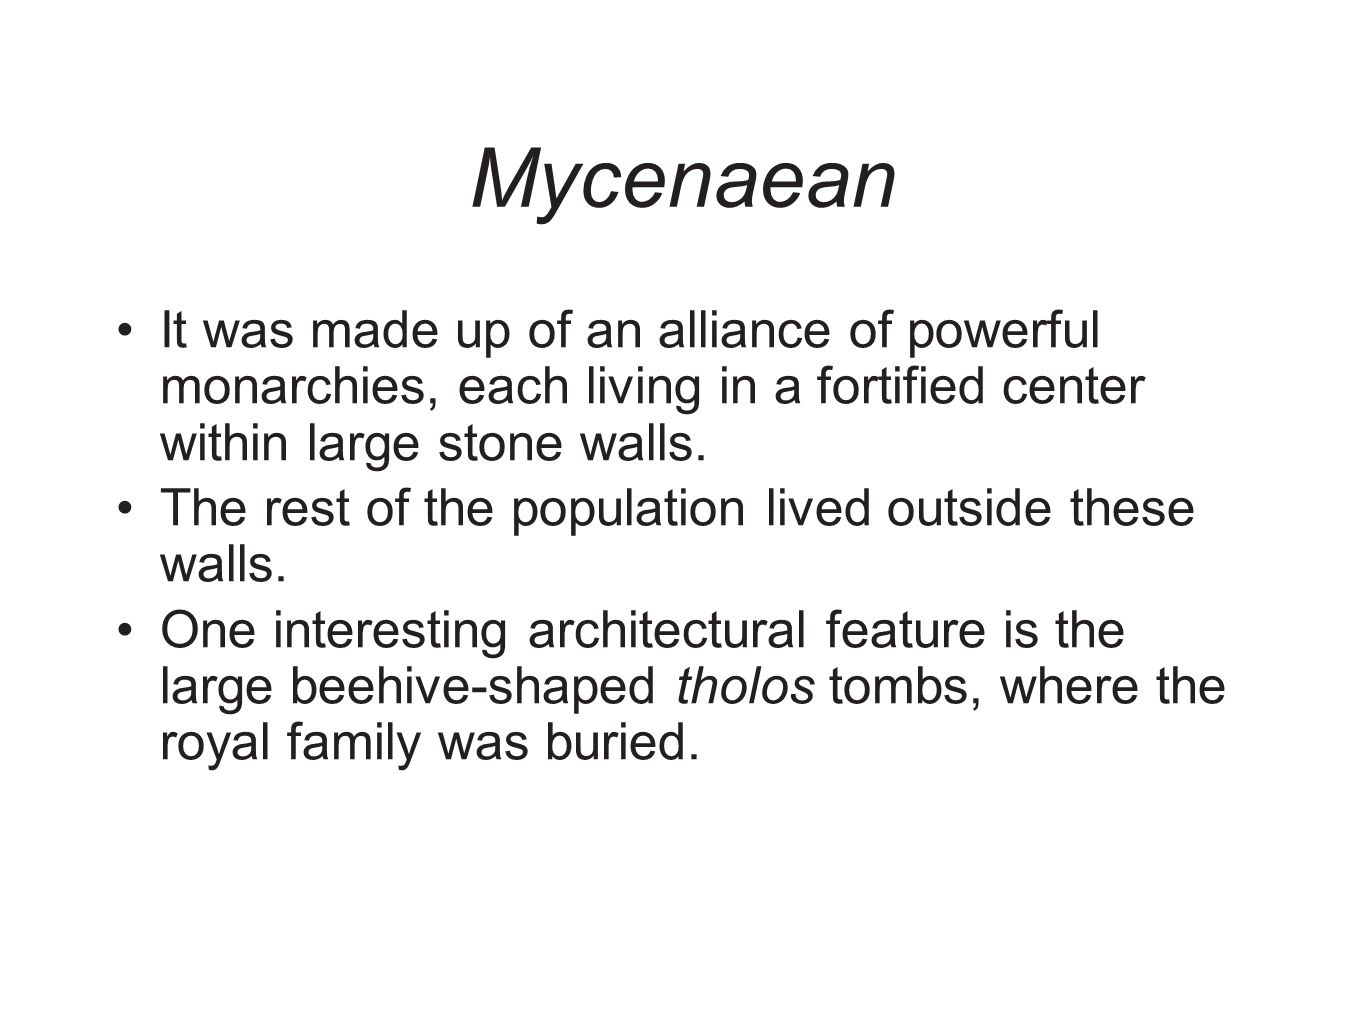 Mycenaean It was made up of an alliance of powerful monarchies, each living in a fortified center within large stone walls.